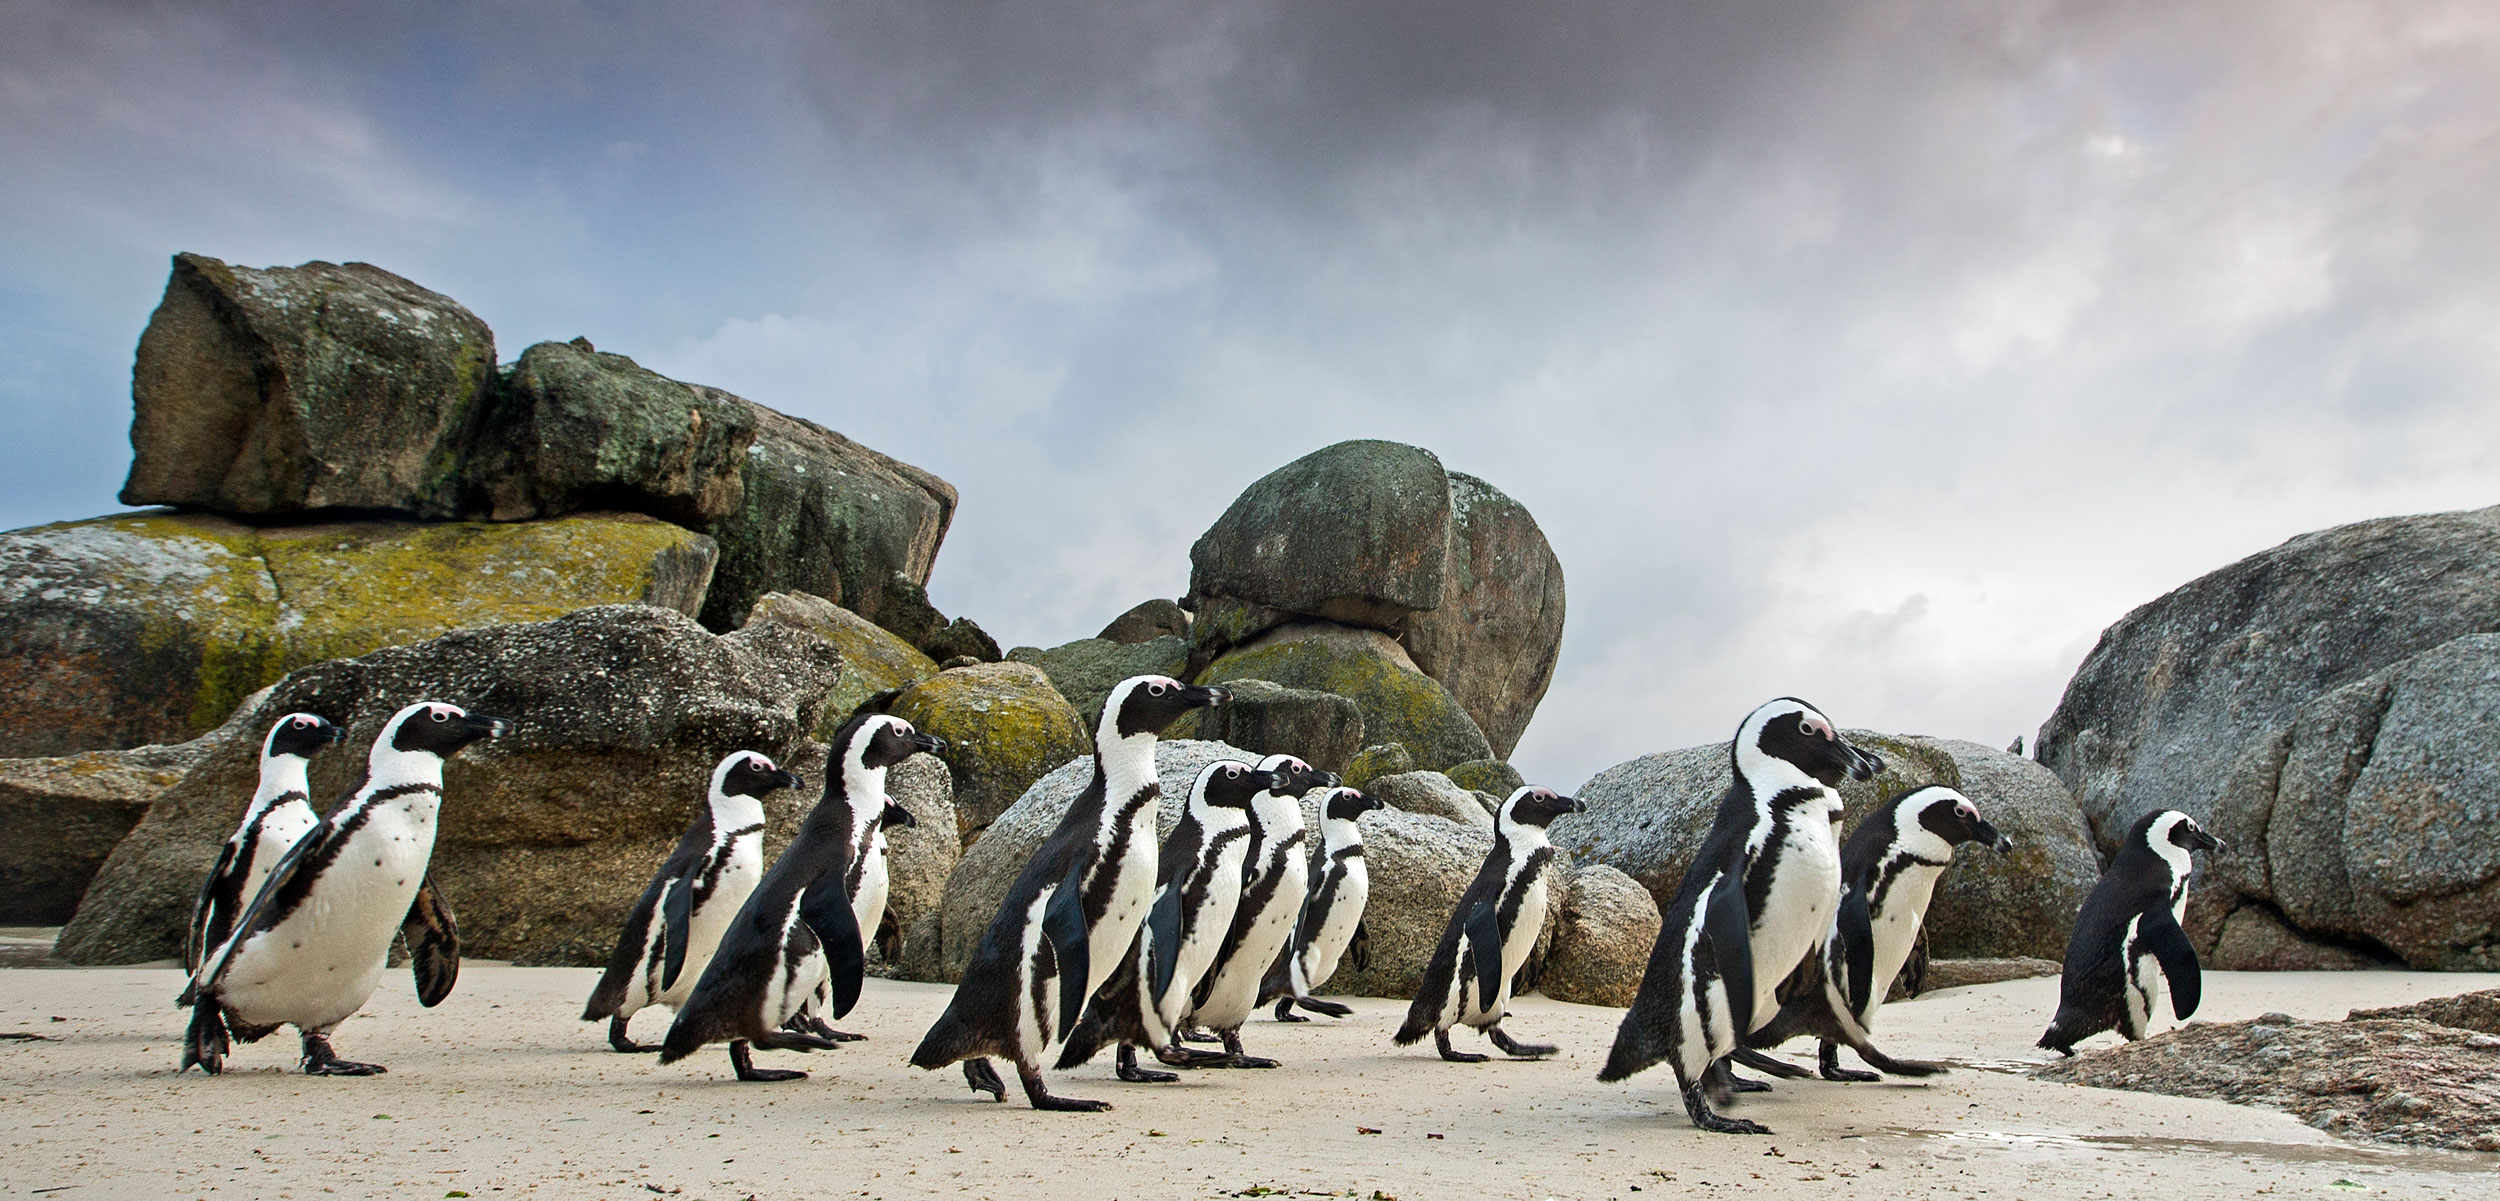 African penguin (Spheniscus demersus) walking towards the shore, Boulders Beach, Cape Town, South Africa